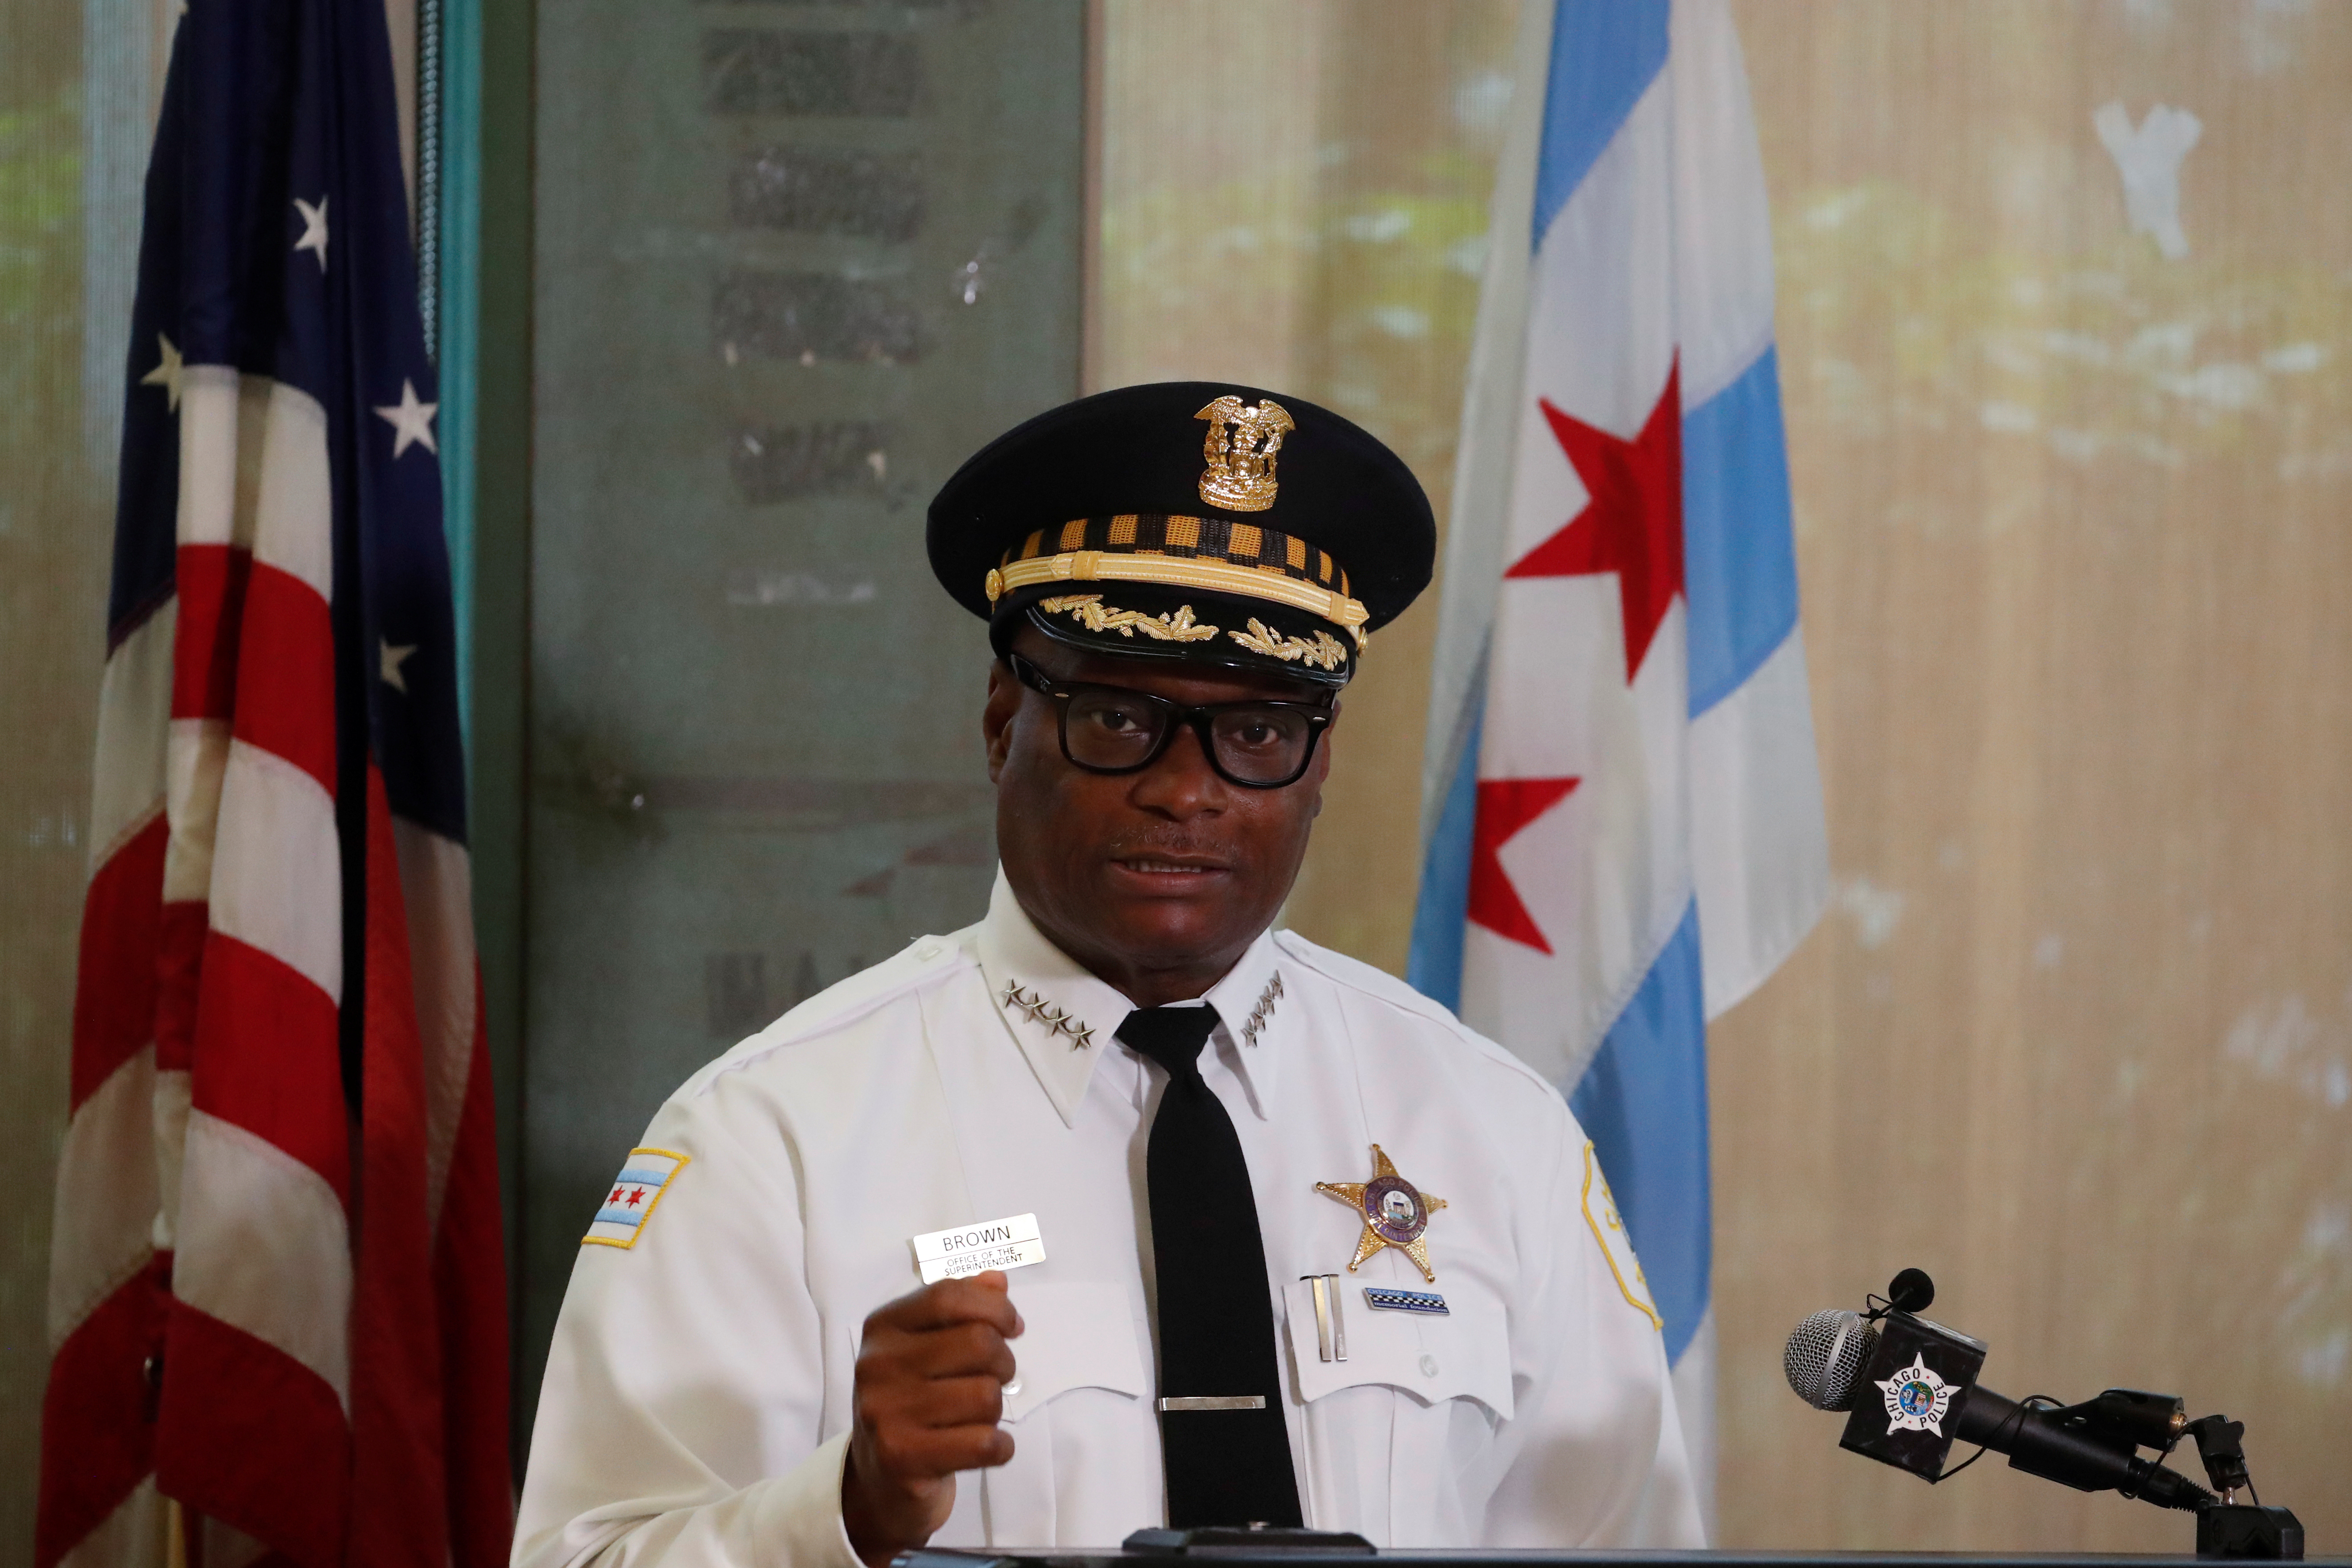 Chicago Police Department Superintendent David Brown speaks during a news conference in Chicago, Illinois, U.S., July 27, 2020.  REUTERS/Shannon Stapleton